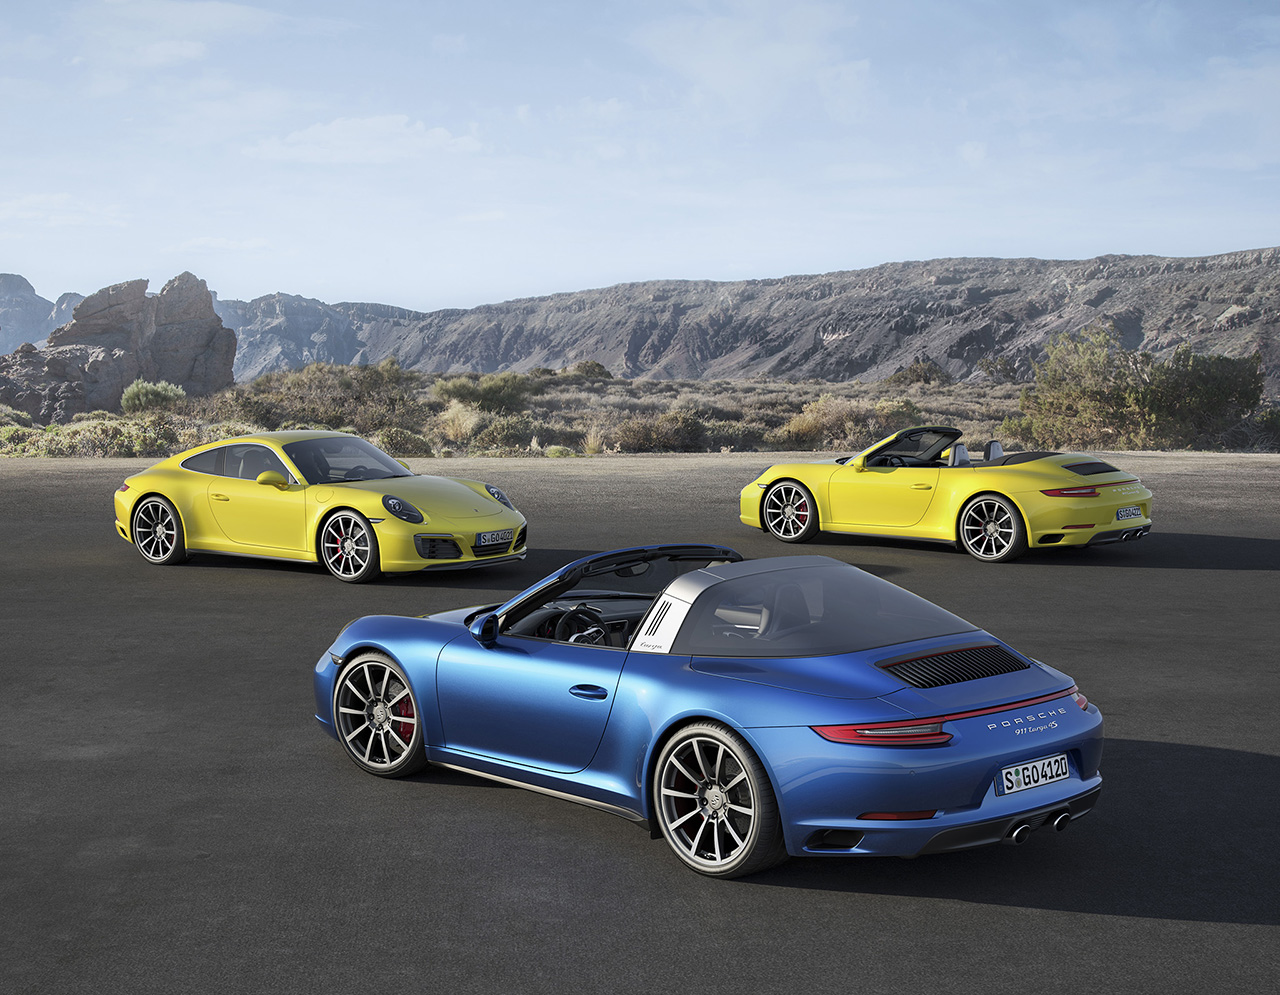 2017 Porsche 911 Carrera 4 and Targa